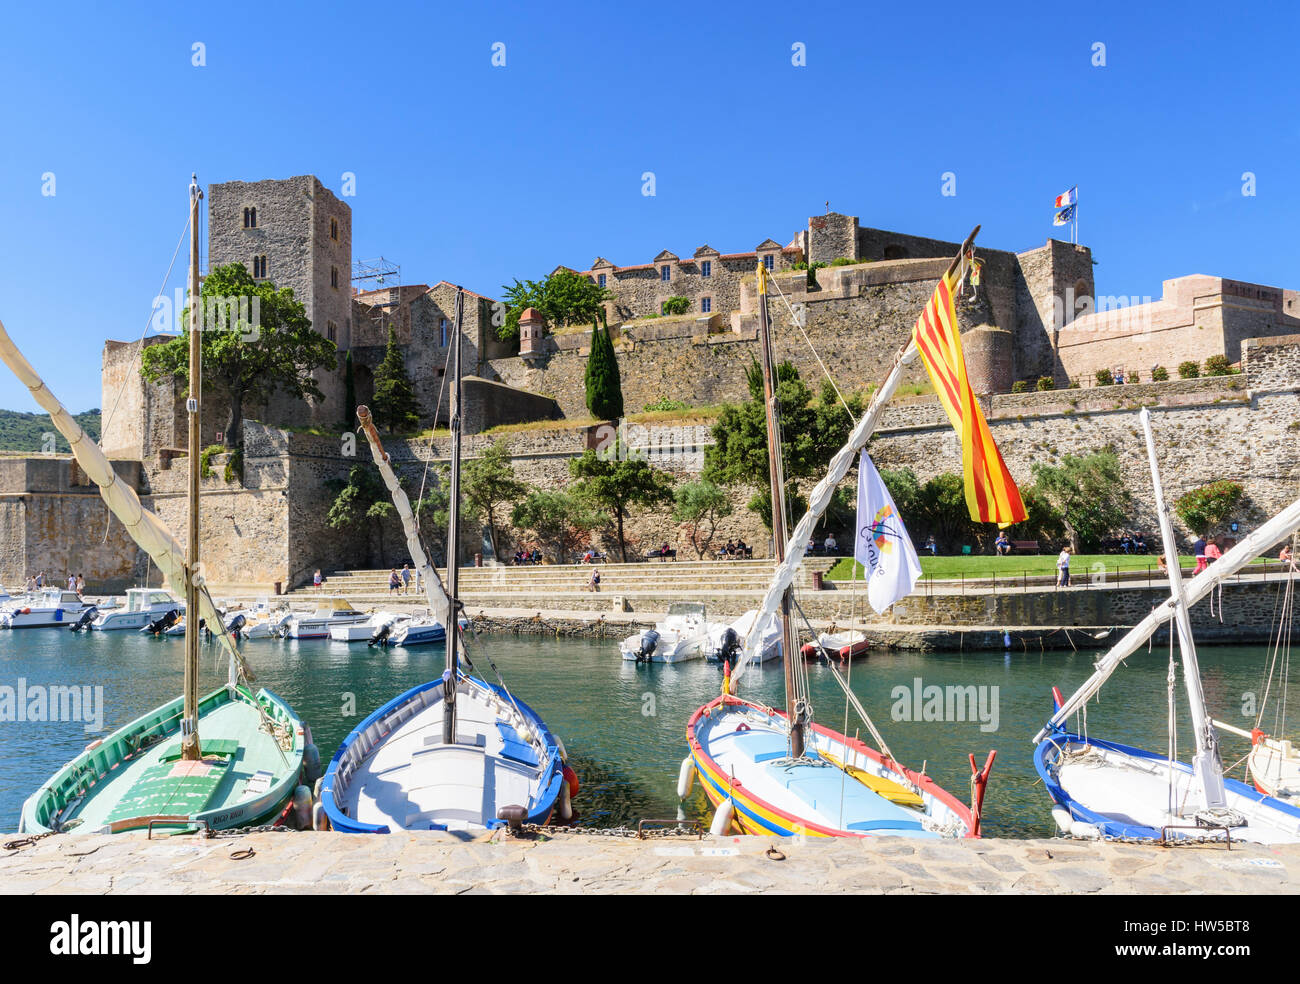 Collioure Château Royal overlooking boats in the small harbour of  Port d'Avall, Collioure, Côte Vermeille, - Stock Image